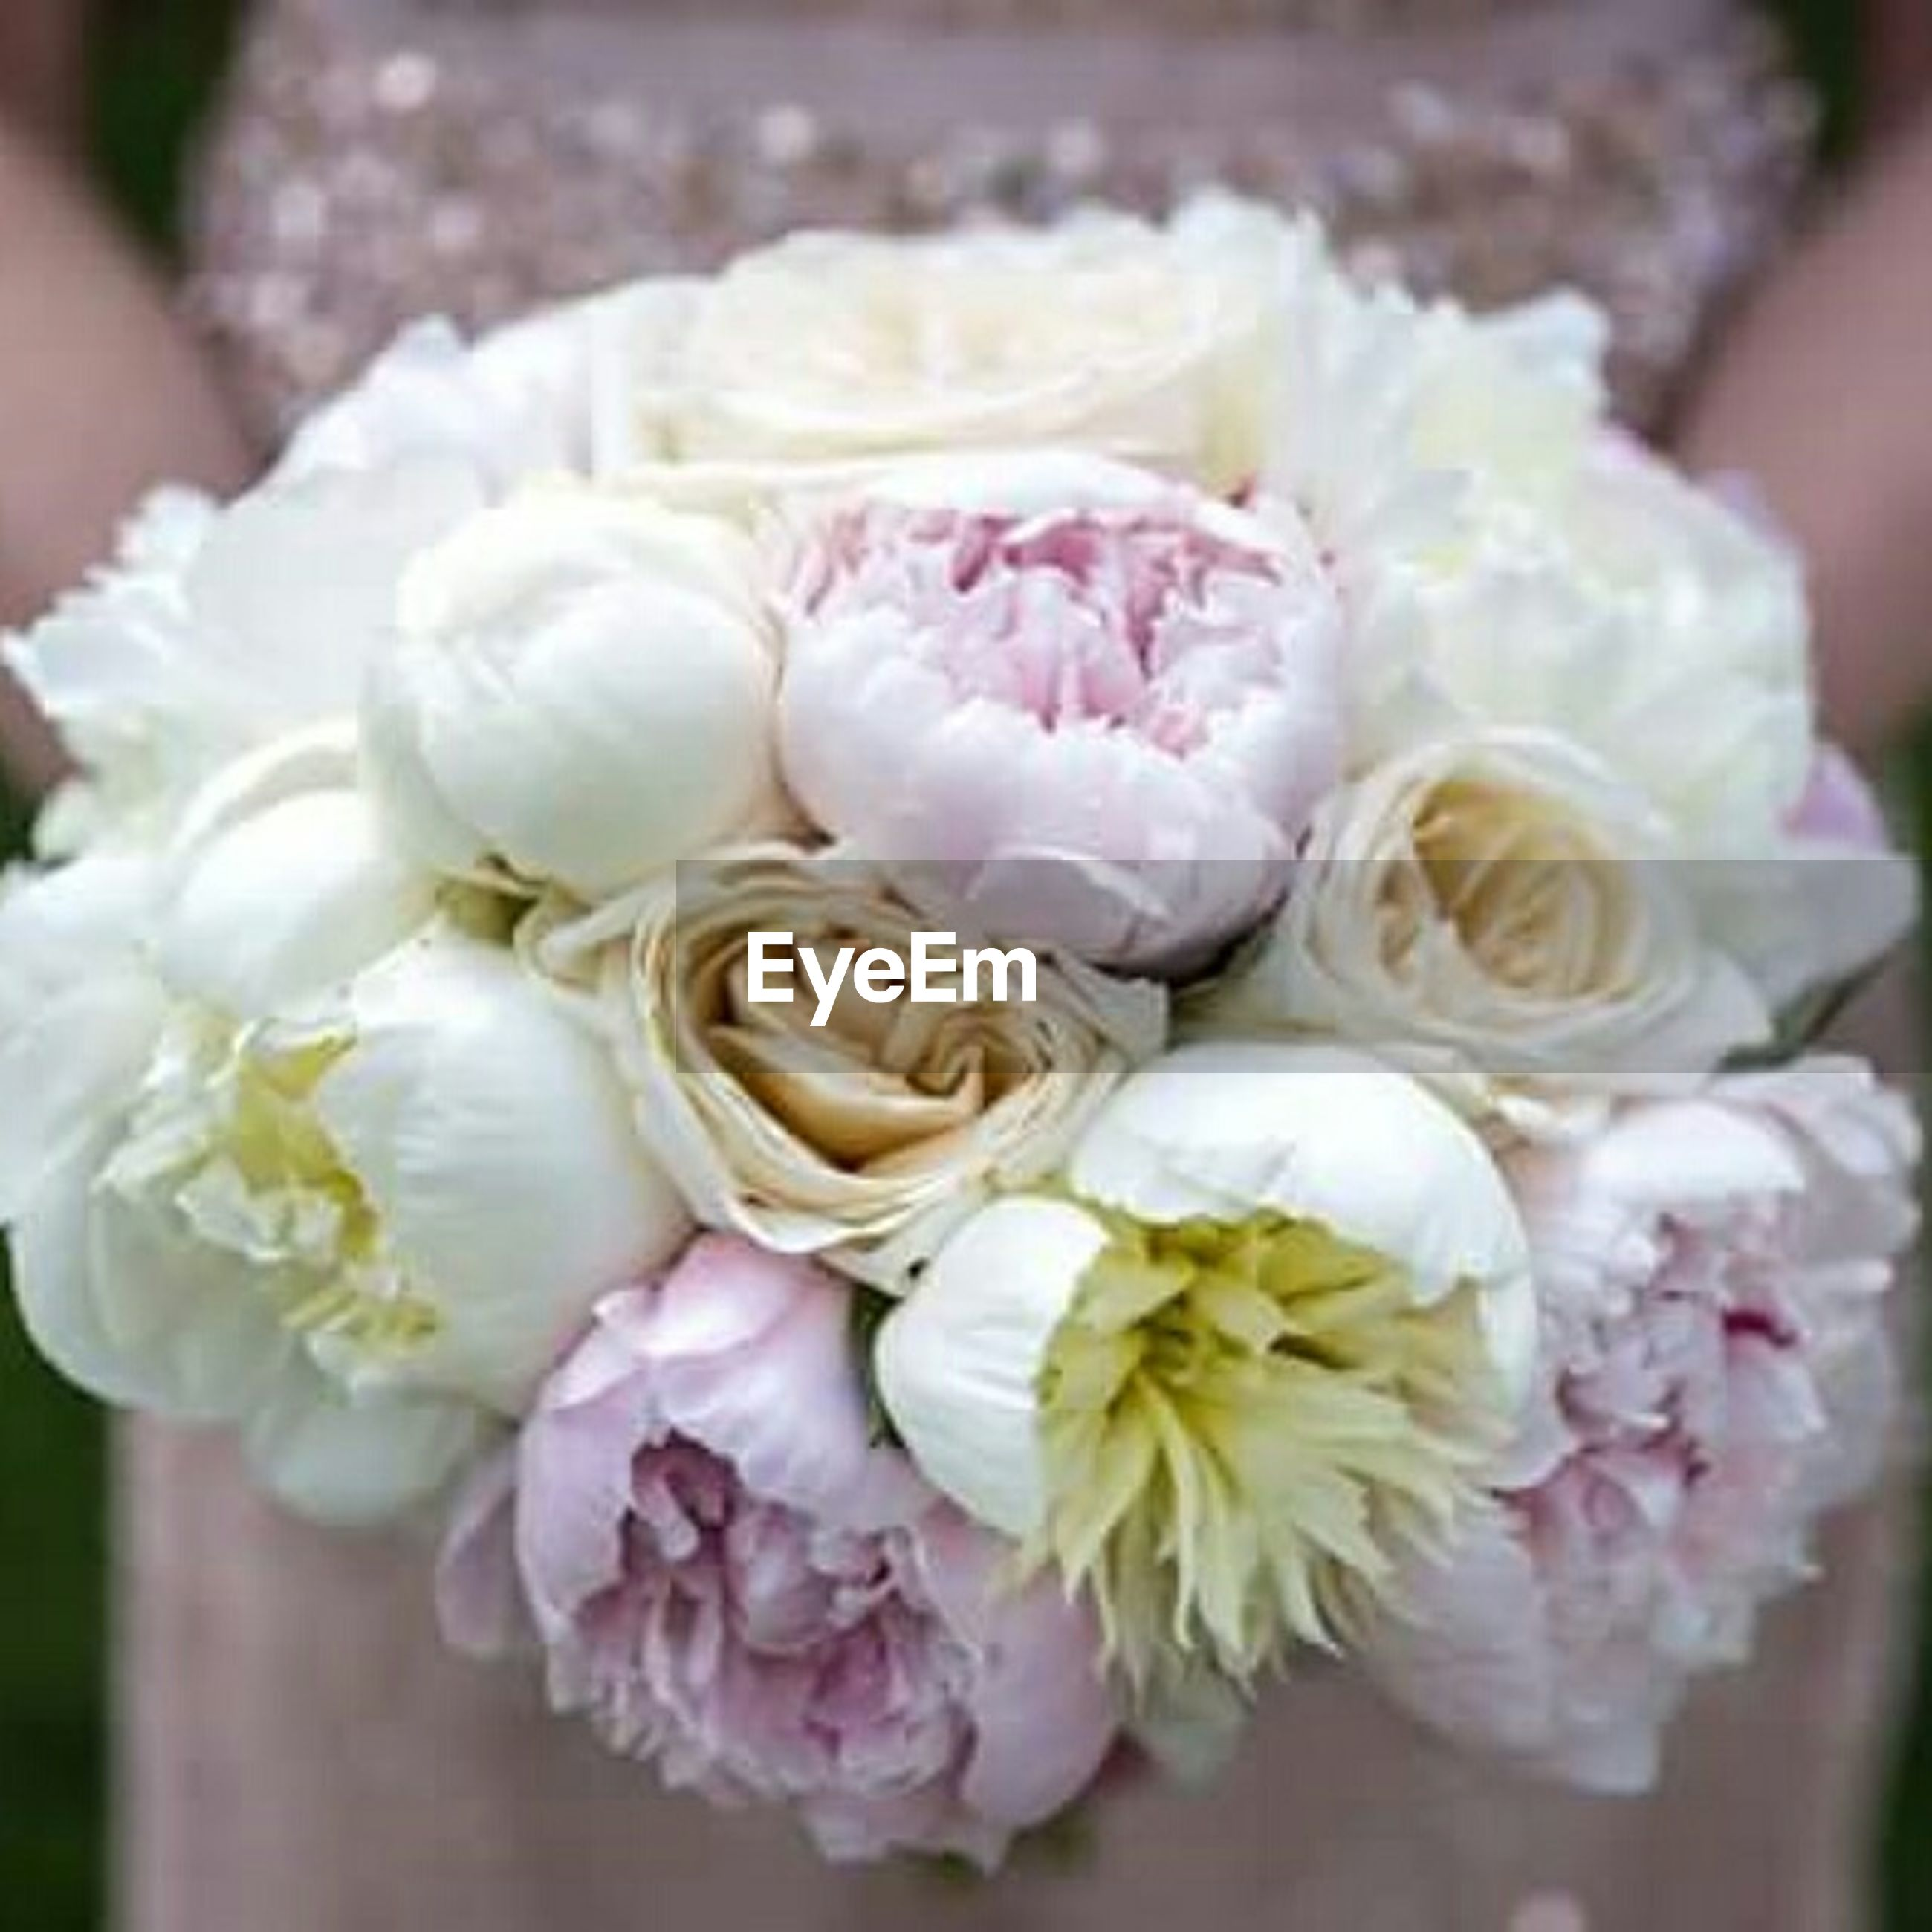 flower, freshness, petal, fragility, flower head, close-up, beauty in nature, pink color, rose - flower, indoors, bouquet, focus on foreground, bunch of flowers, white color, nature, growth, blooming, selective focus, blossom, botany